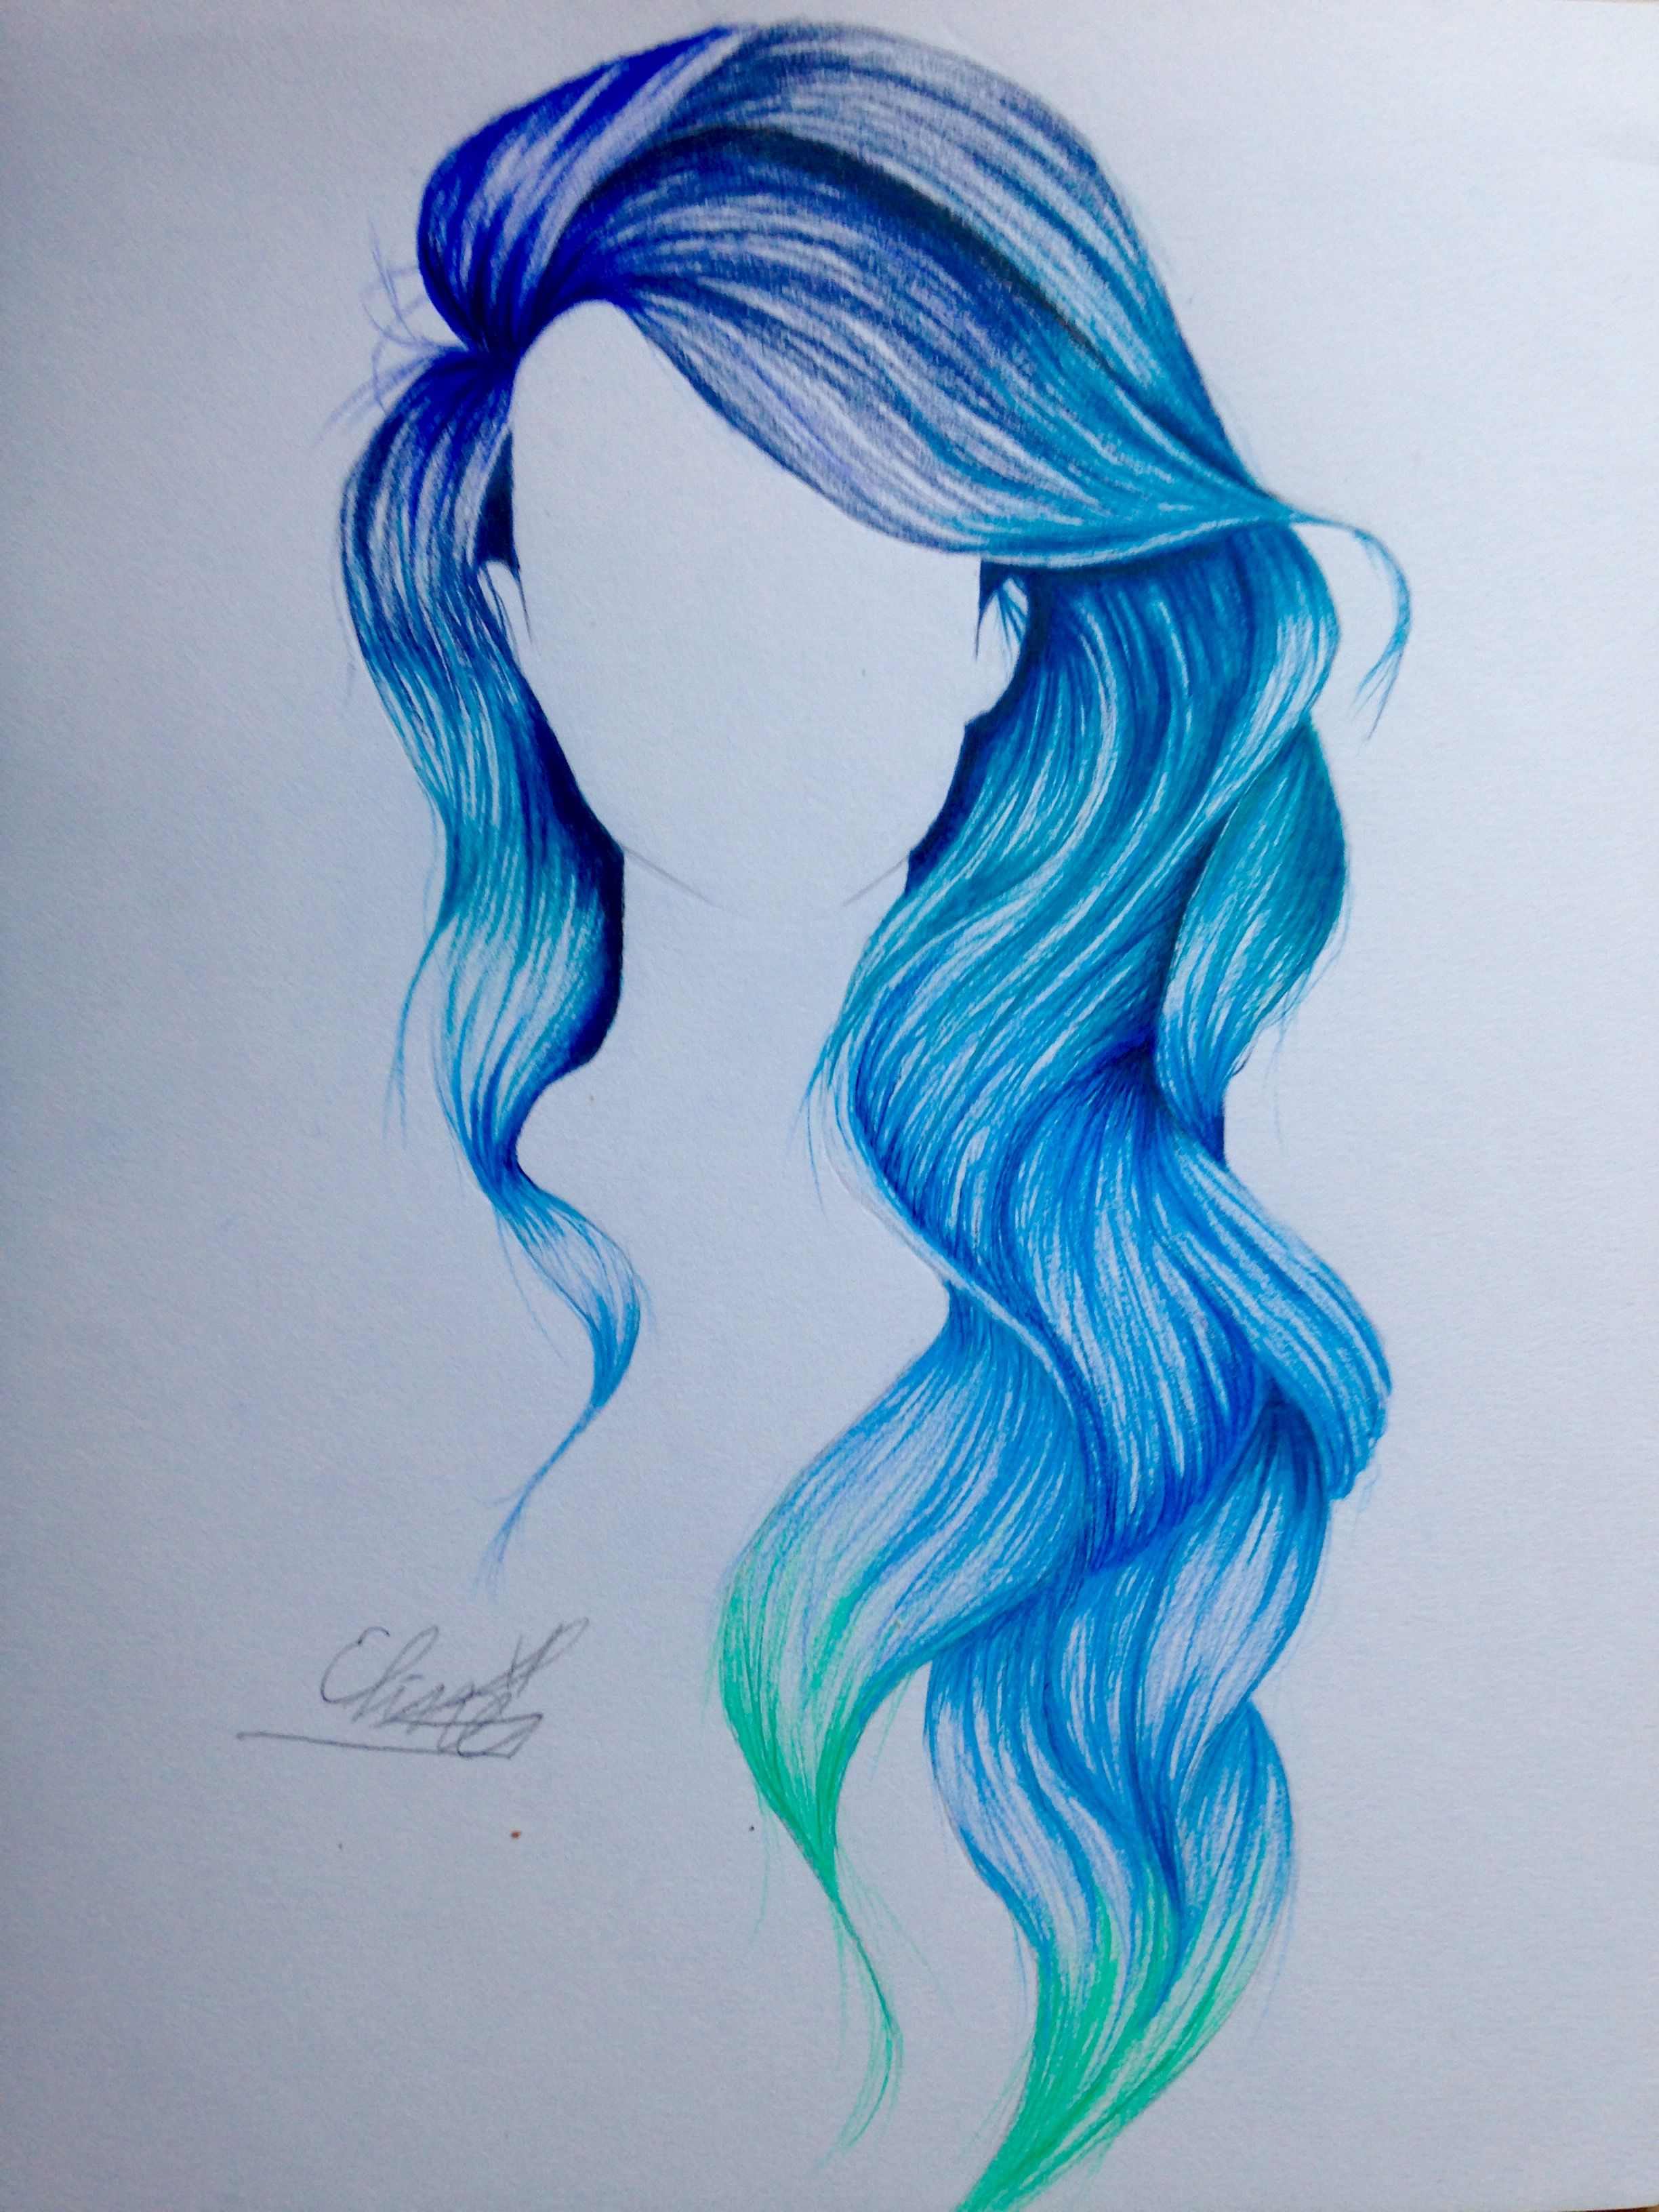 Blue mermaid ombr hair drawing. Was so much fun to draw!